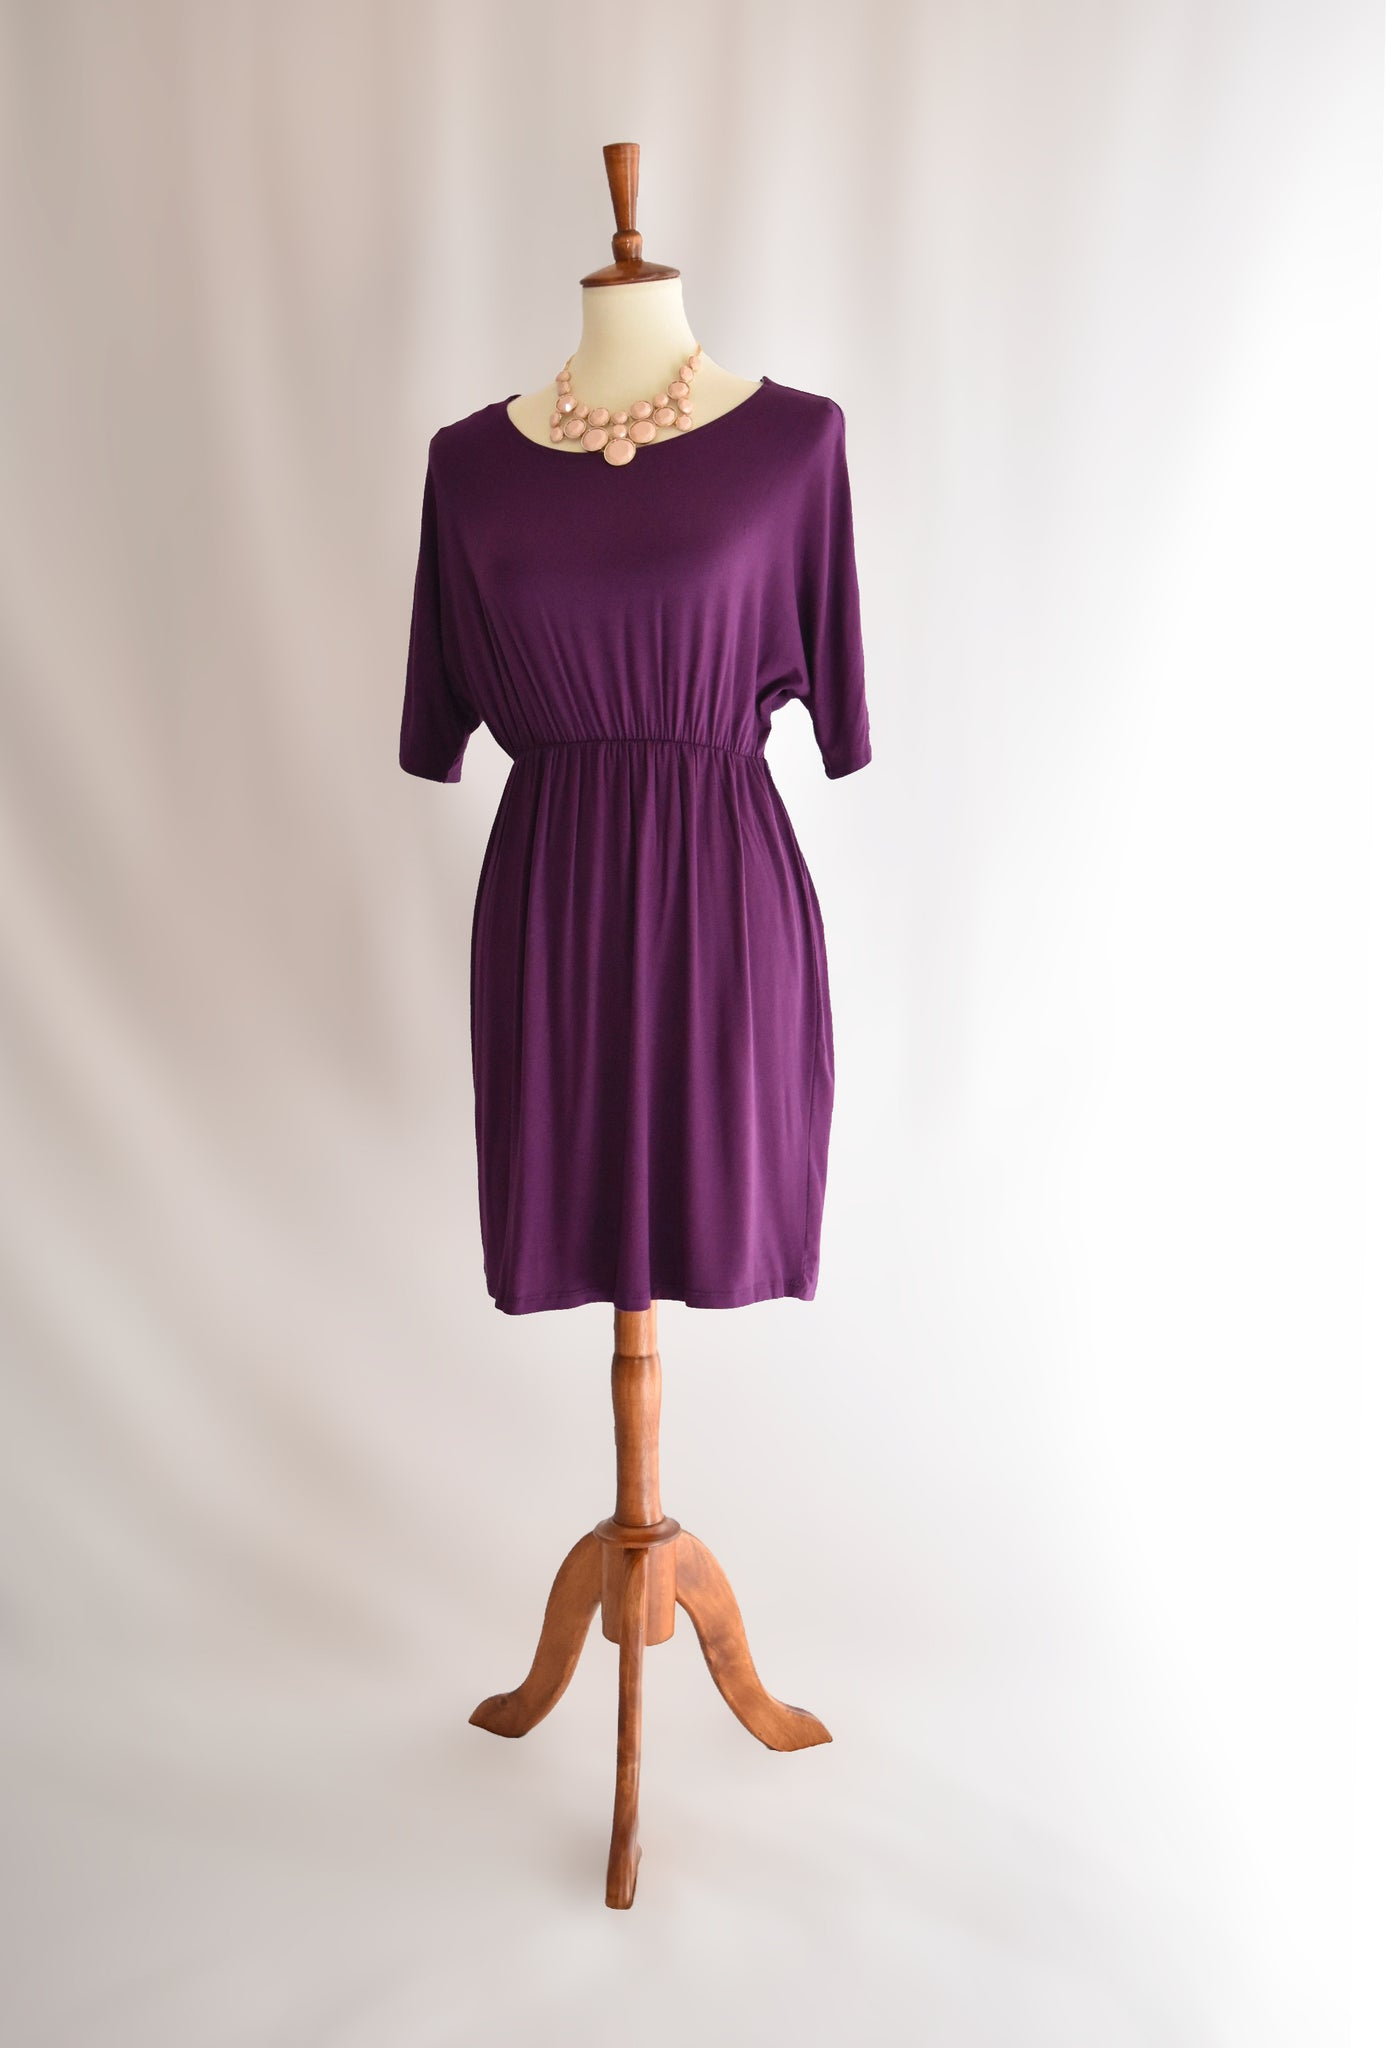 Mia Dress in Eggplant